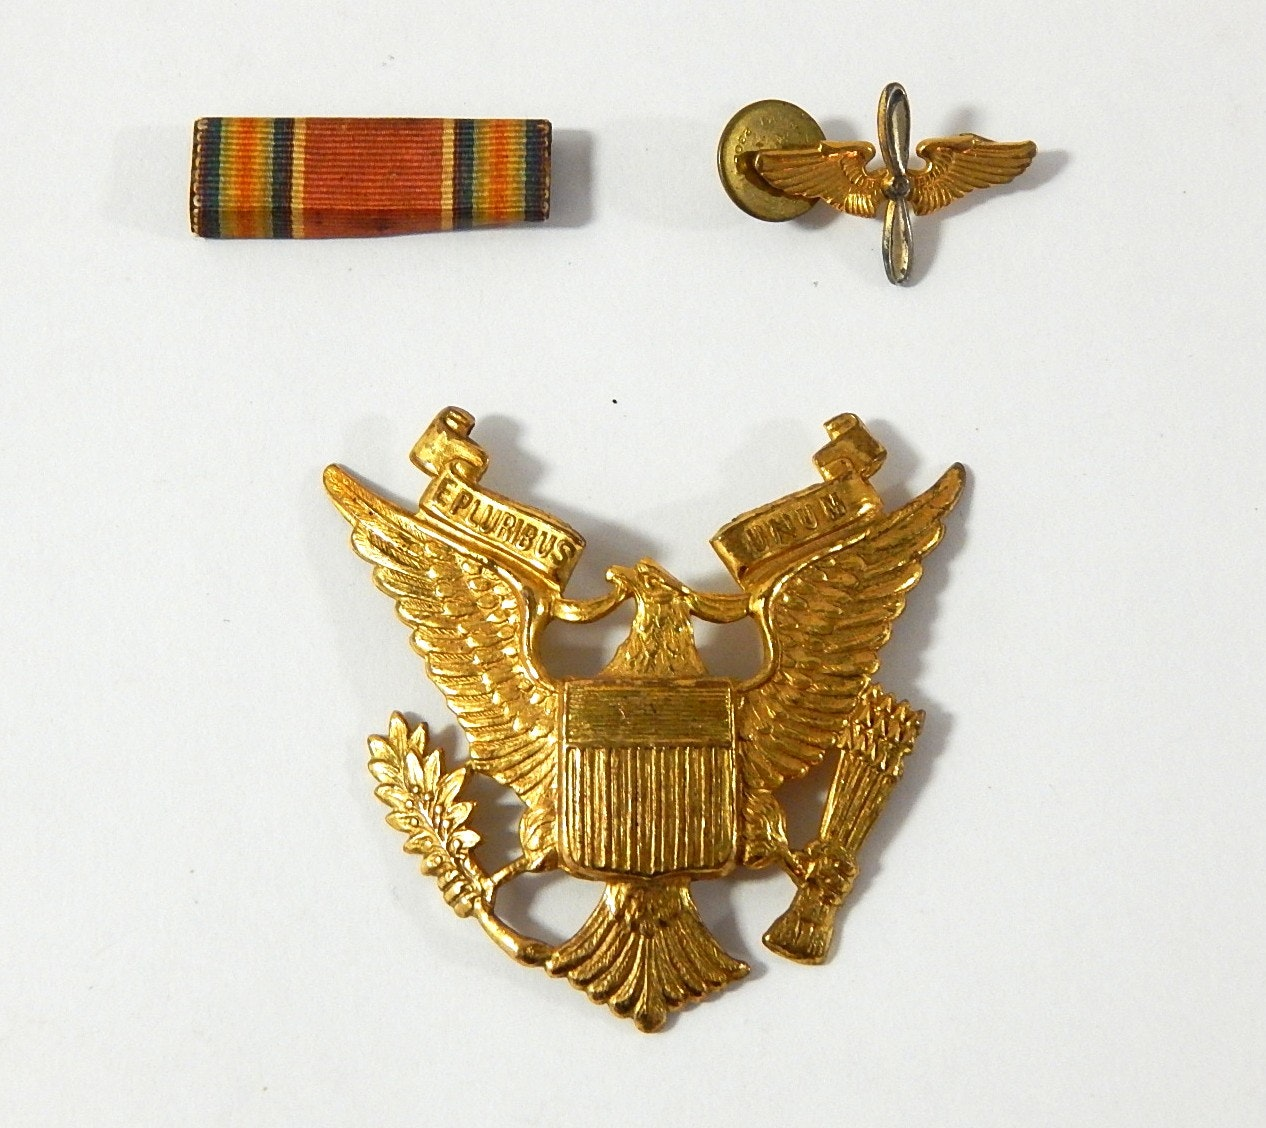 WWII Pins and Medals